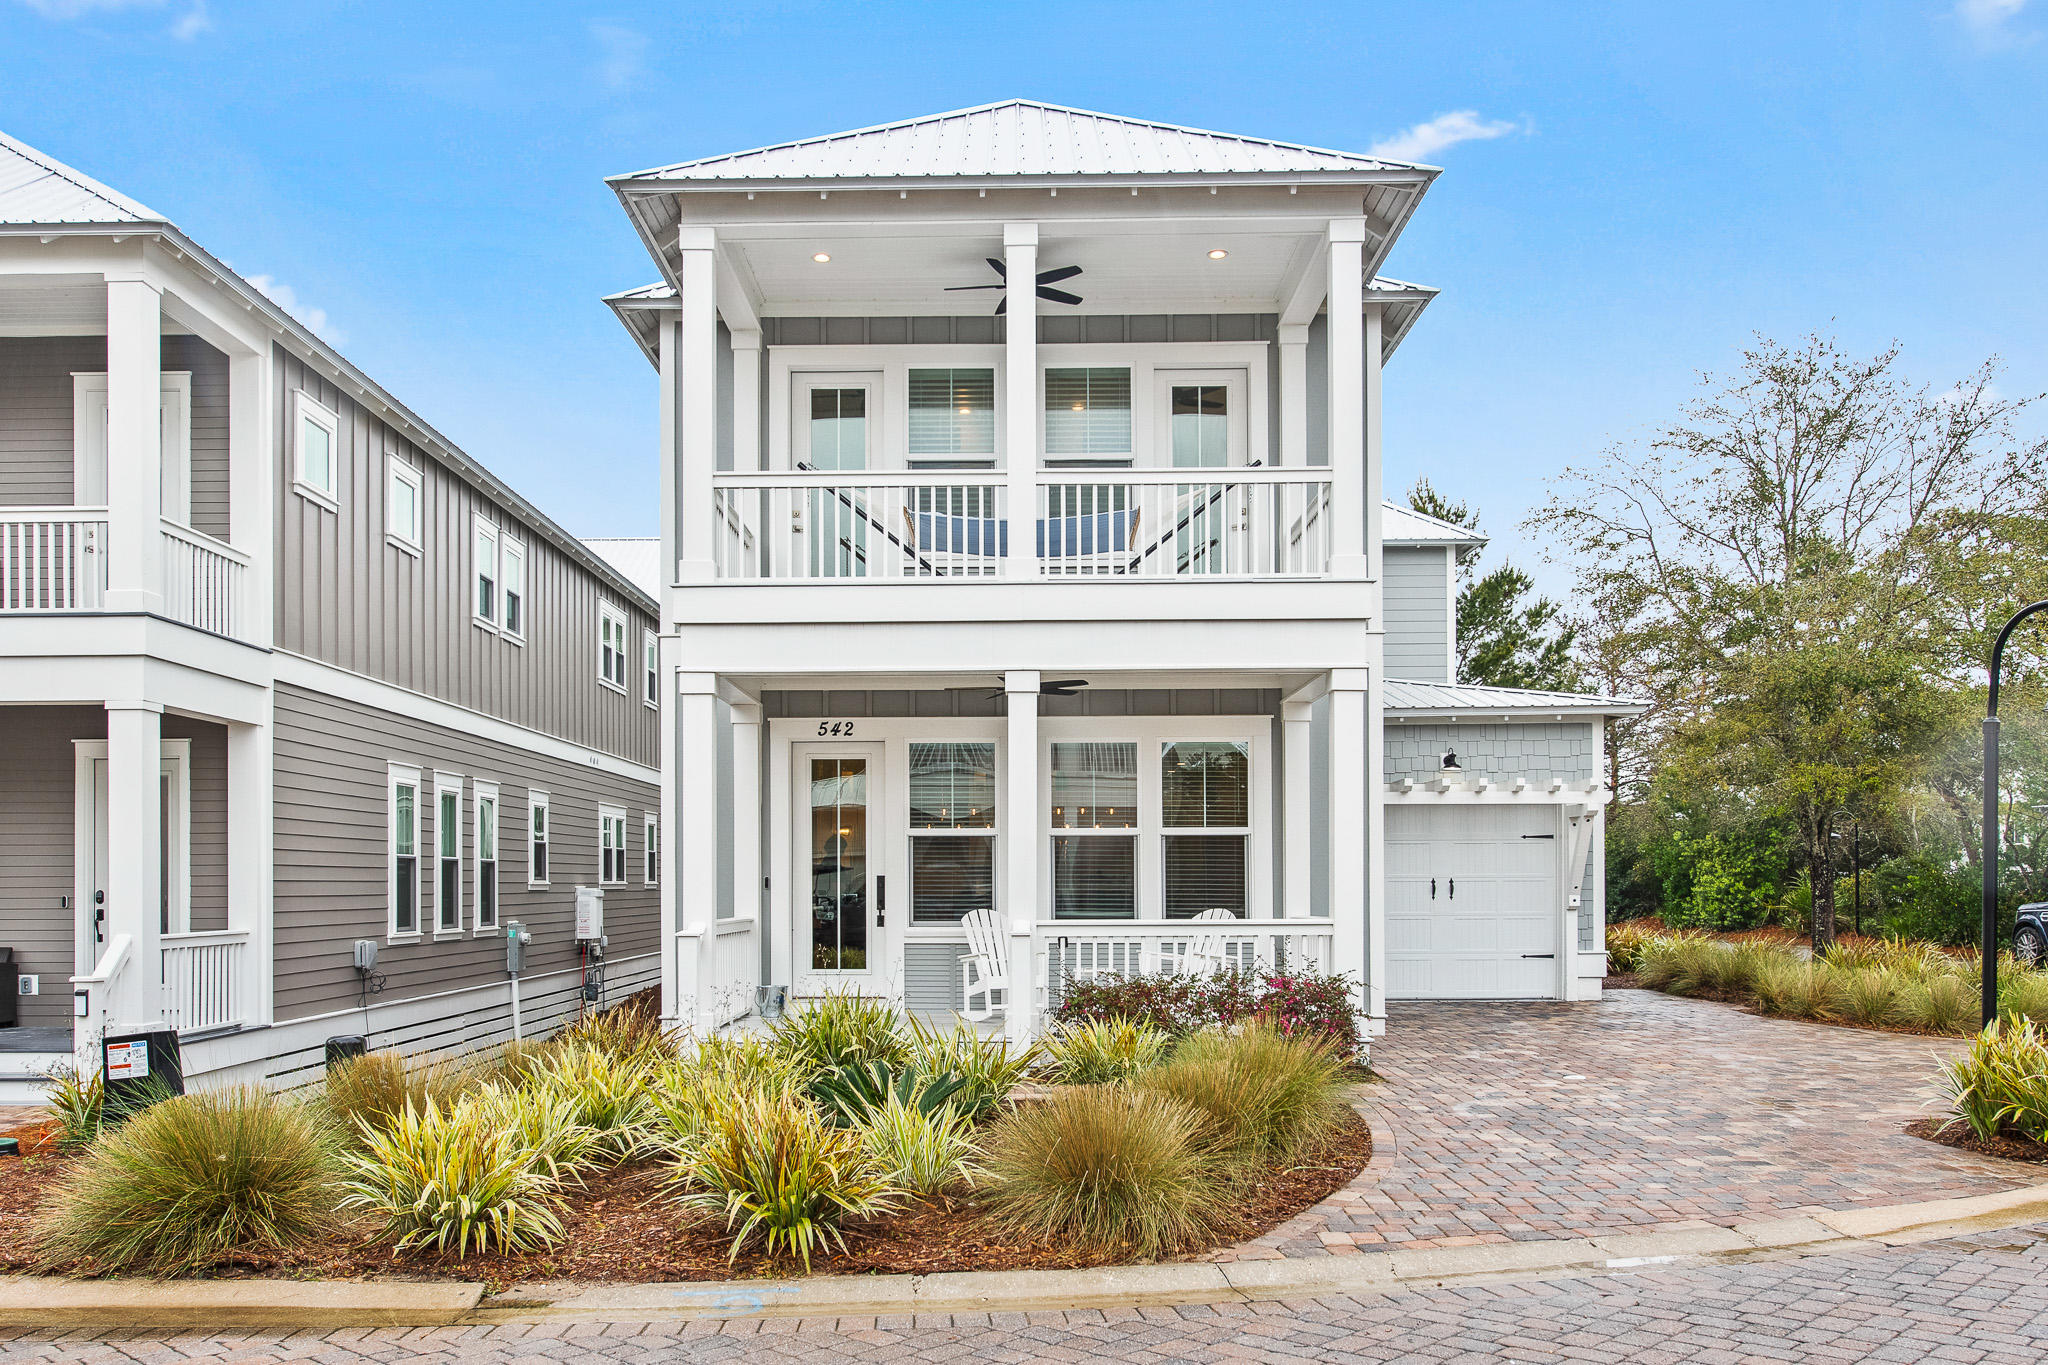 Photo of home for sale at 542 Gulfview, Santa Rosa Beach FL